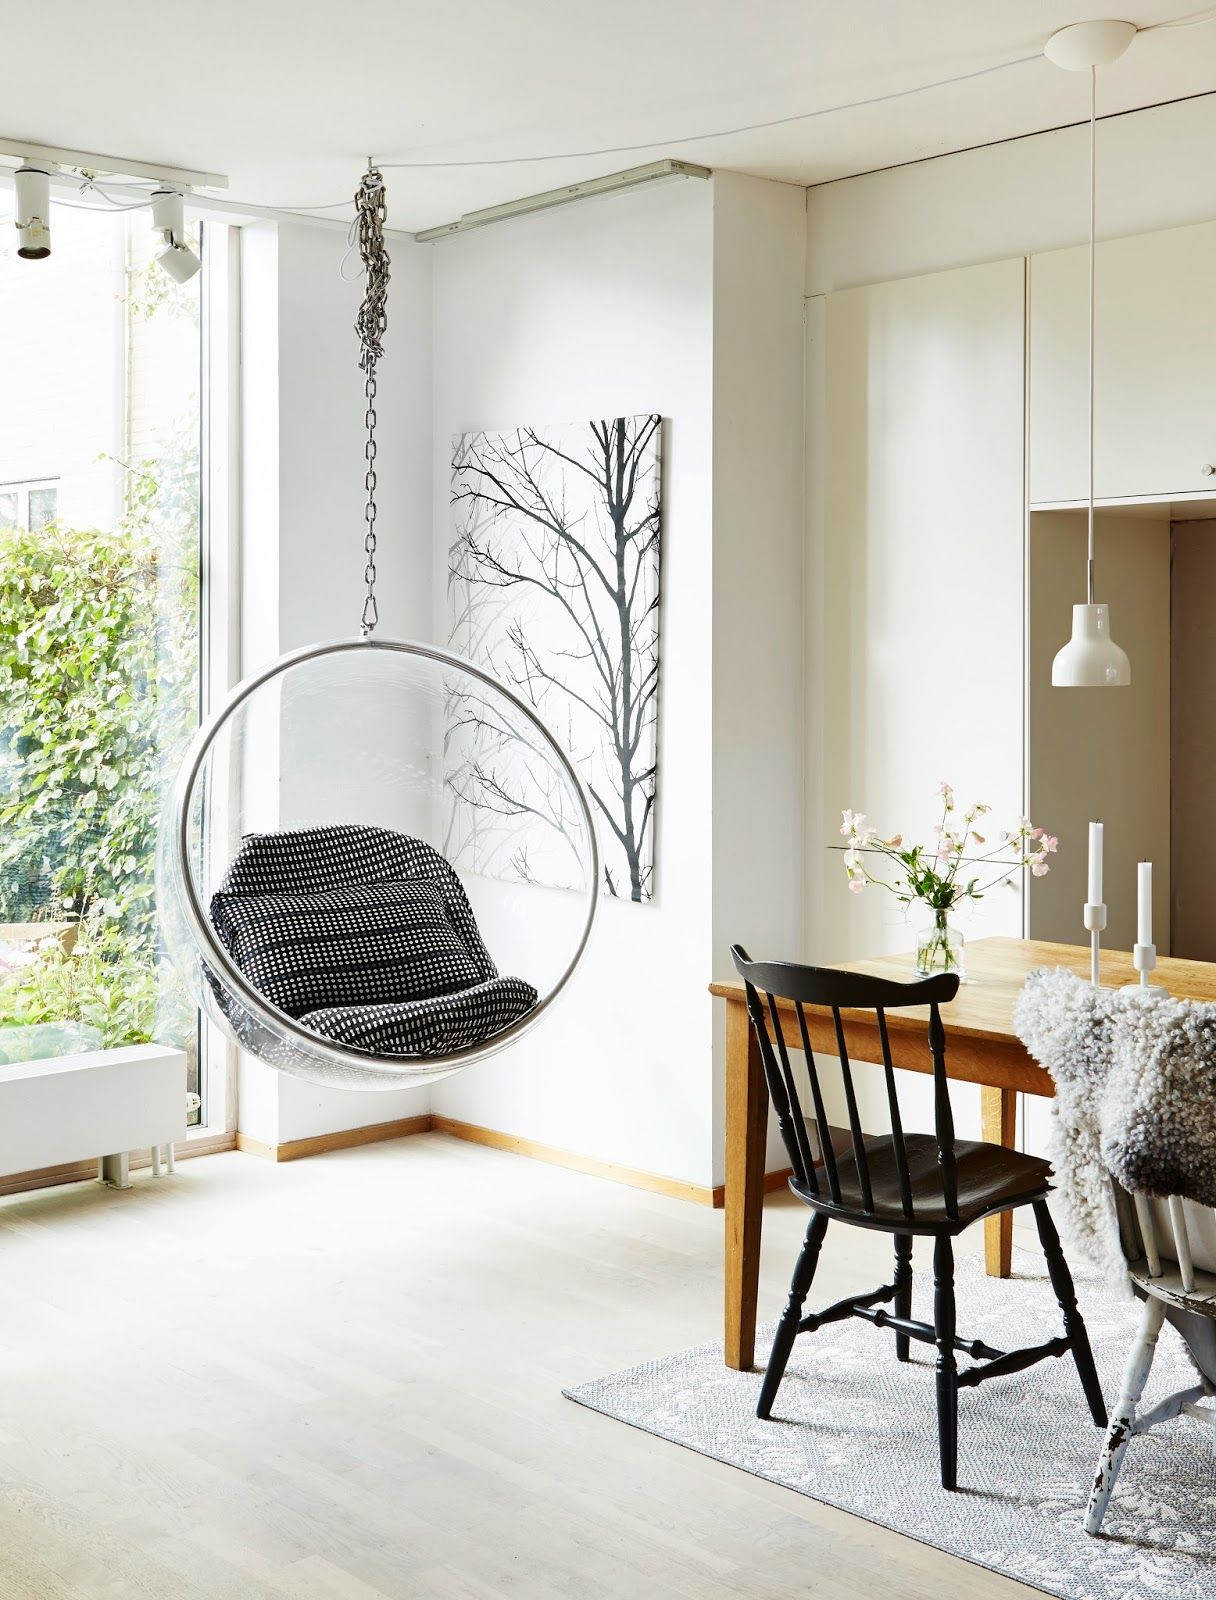 design bloggers at home | Bubble chair, Interiors and Hanging chair